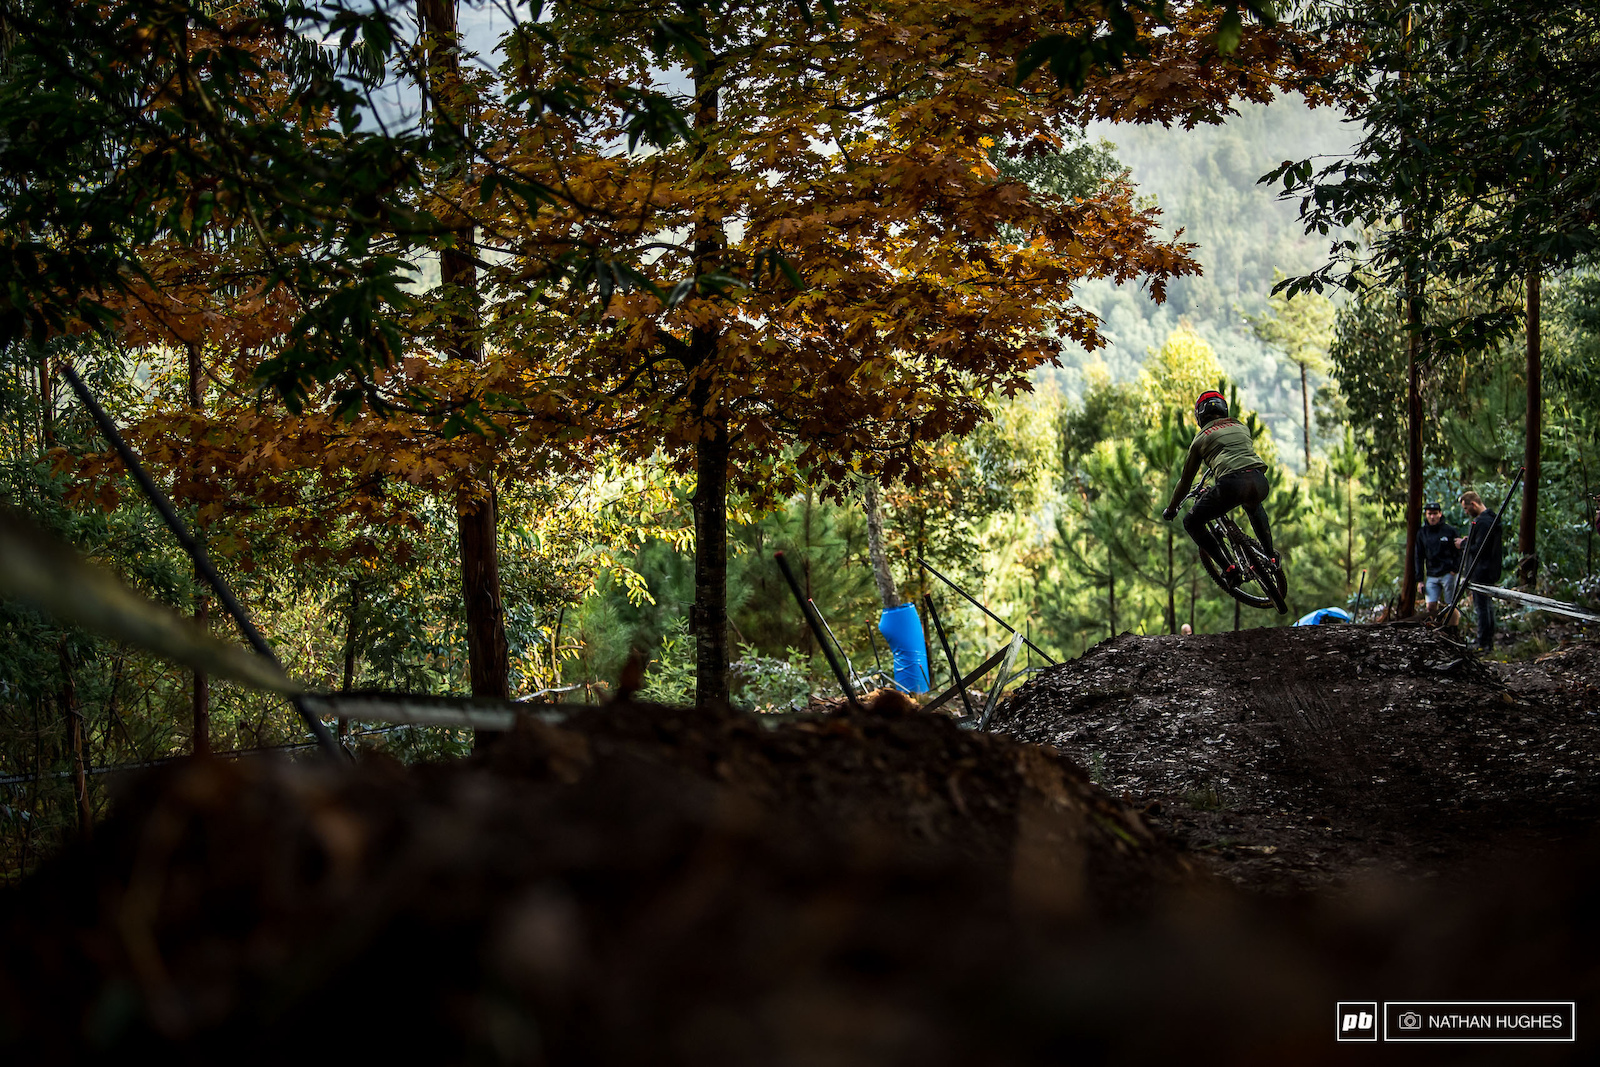 Still a little surreal to see World Cup racing go down with autumn colours in the woods.